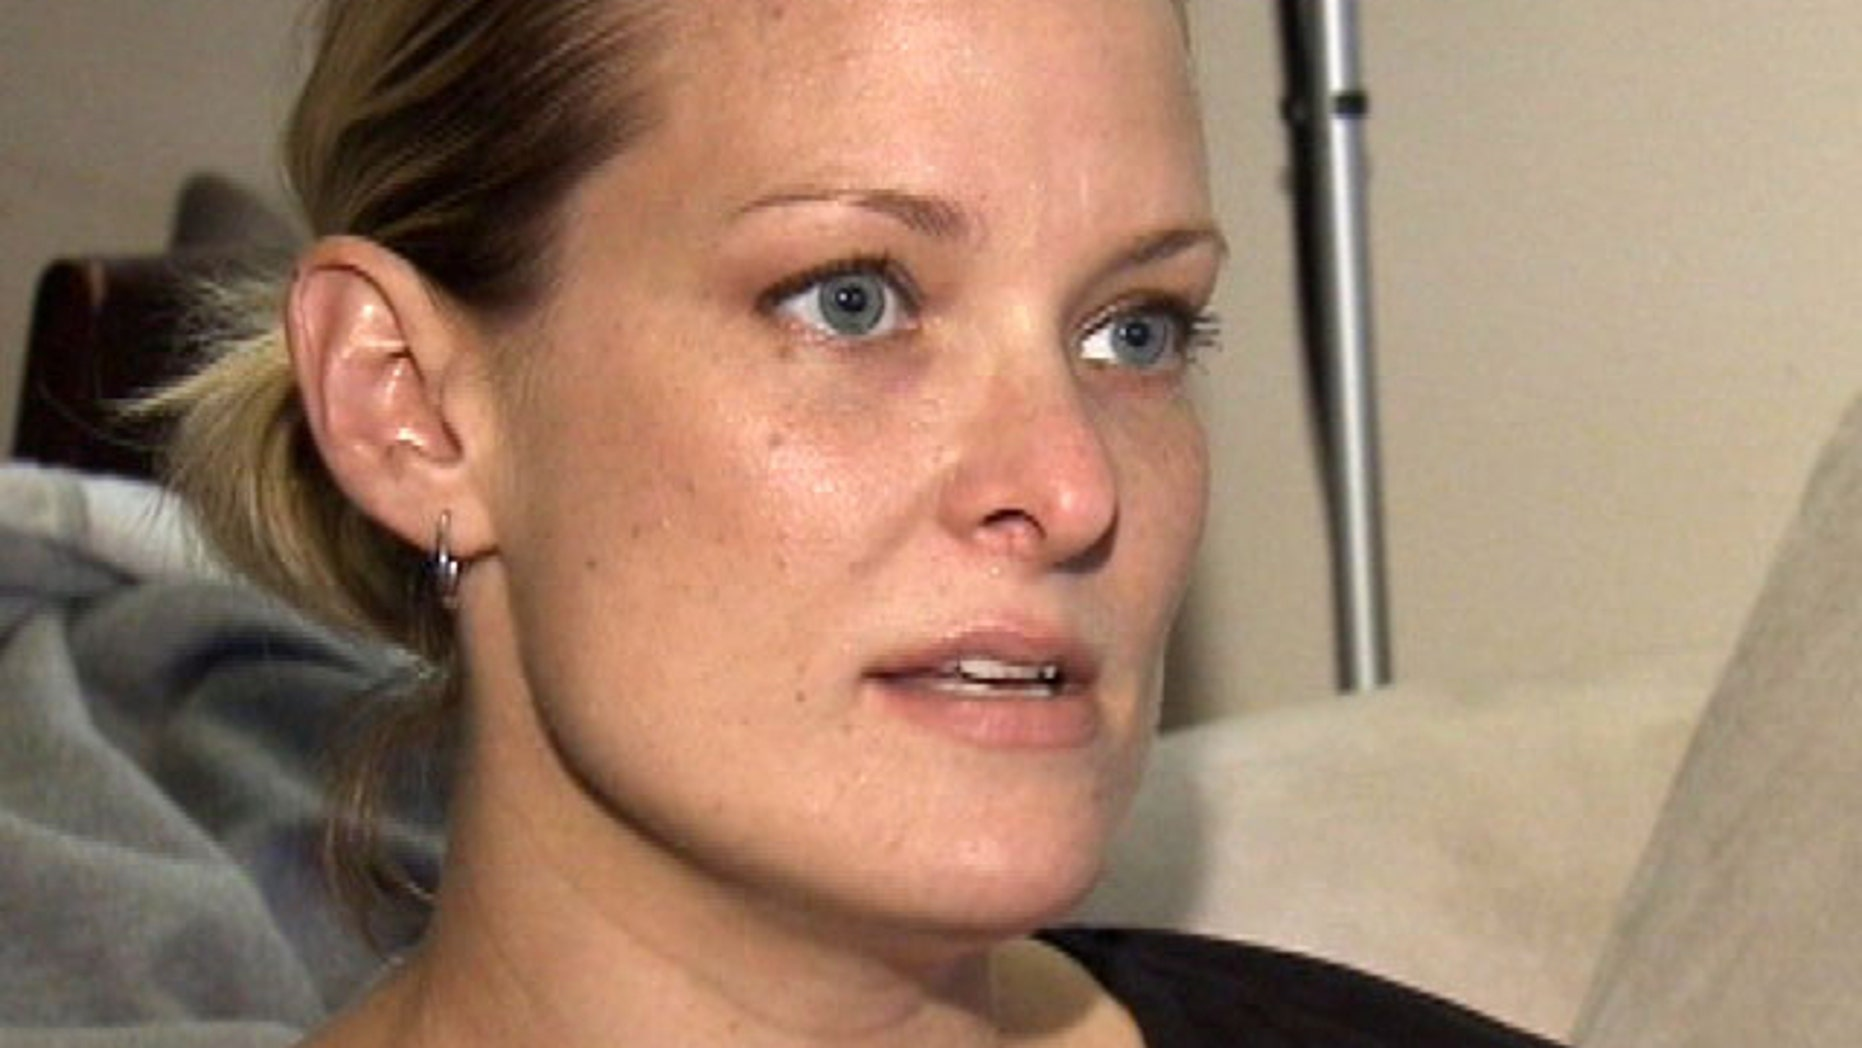 Kati Menoch wanted to sell her wedding rings, but the potential buyer stole them instead.